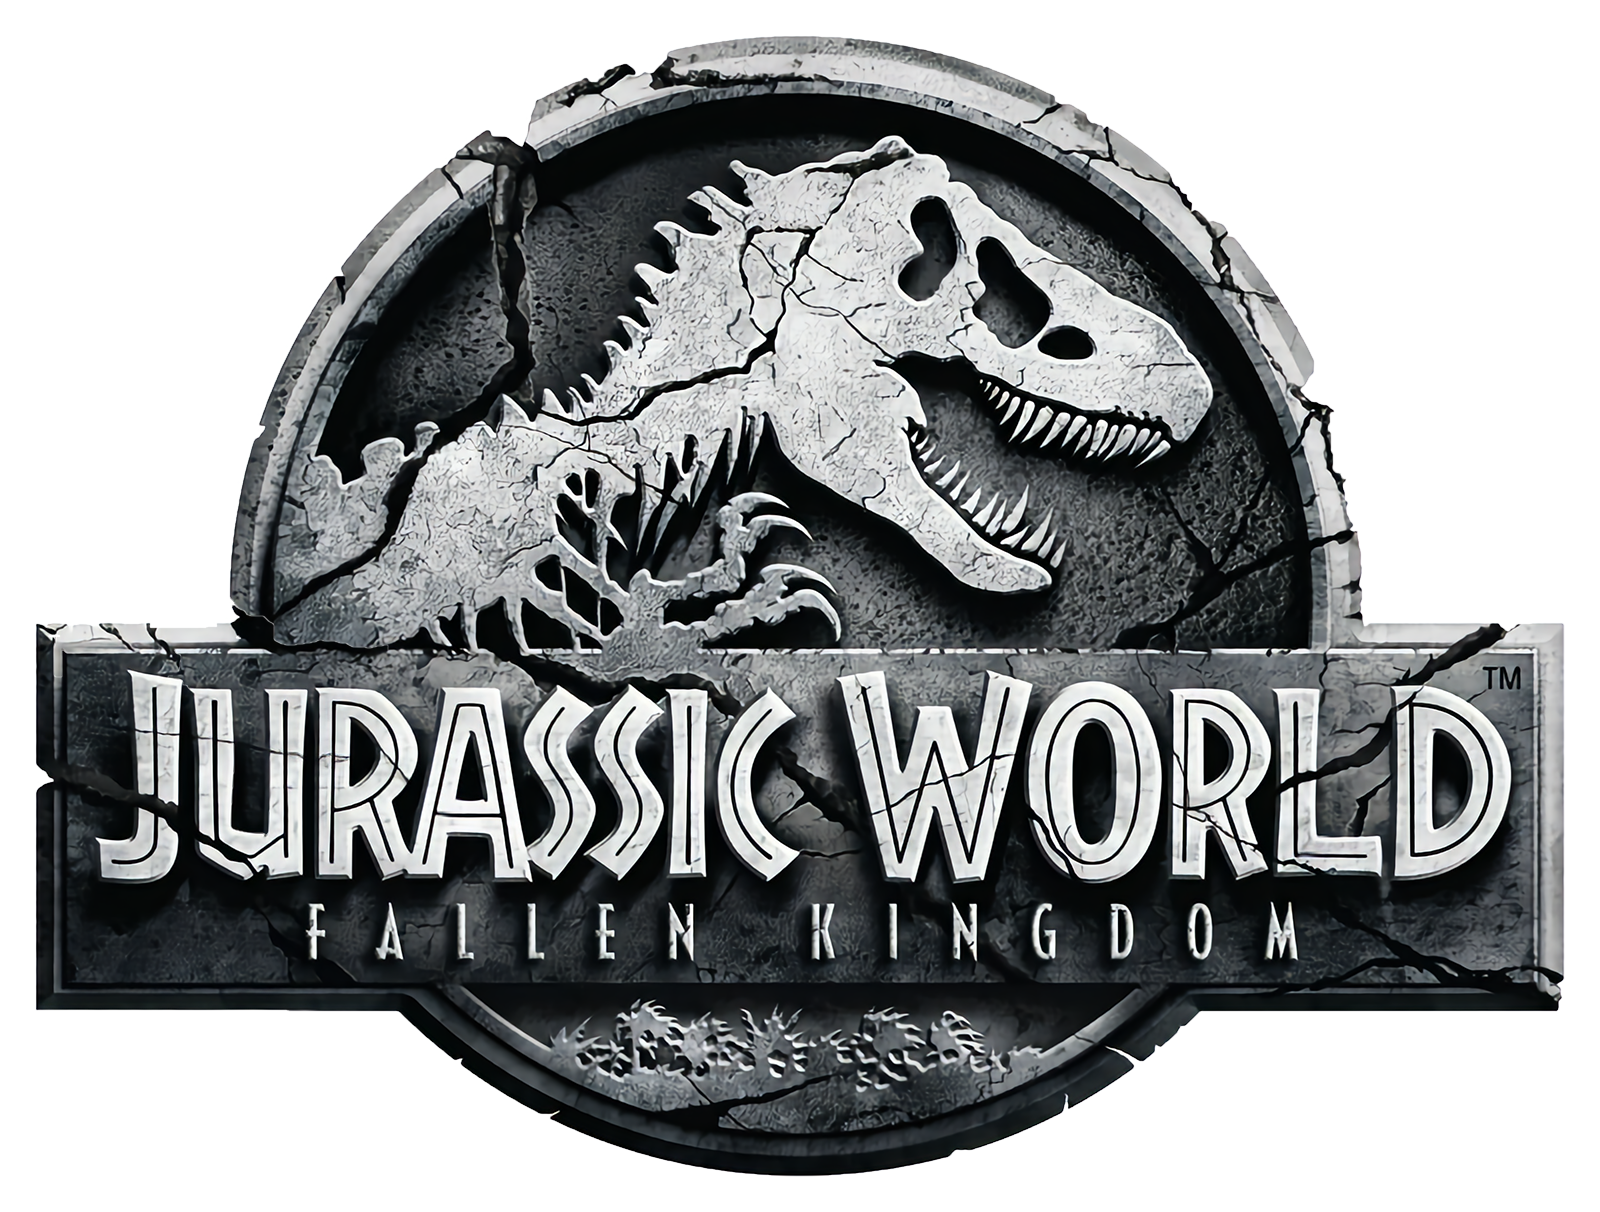 Jurassic world logo png. Park operation genesis lego